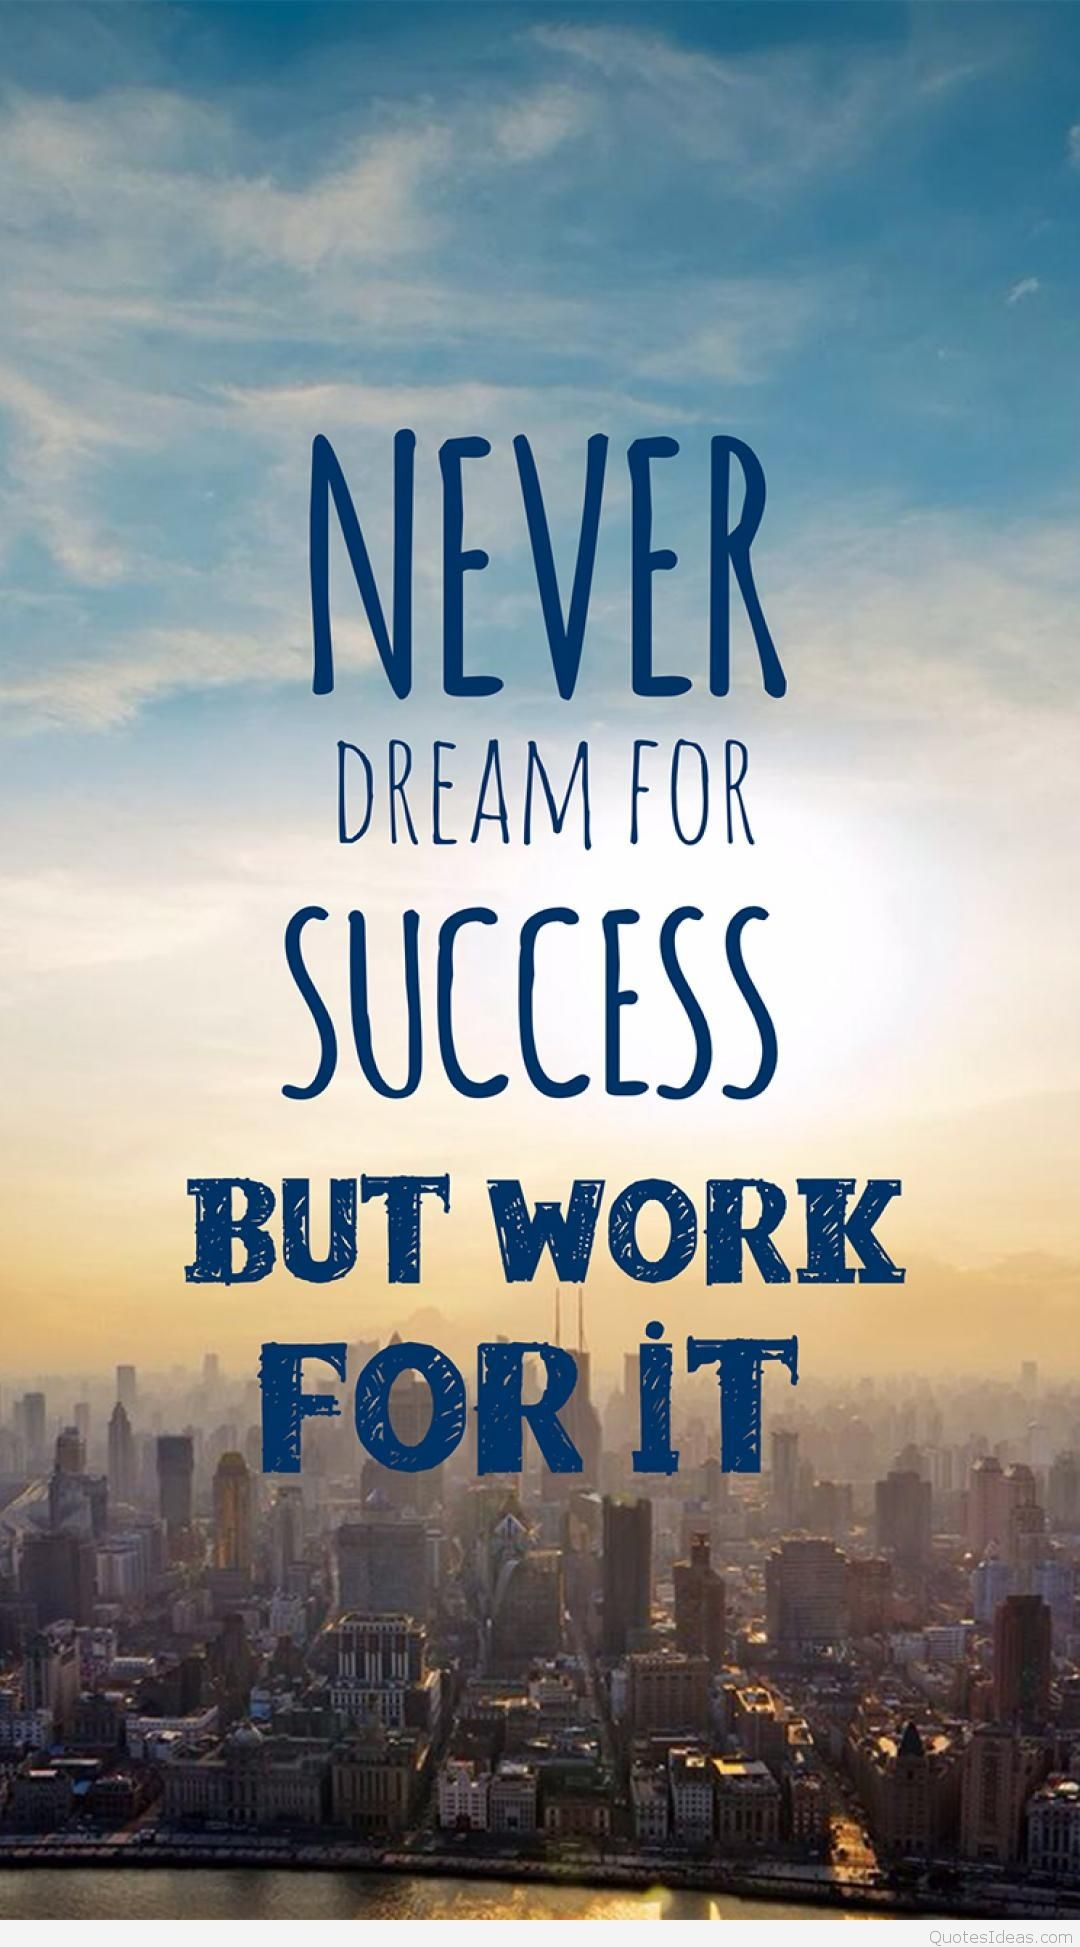 Dream Success quote and wallpaper for mobile phone